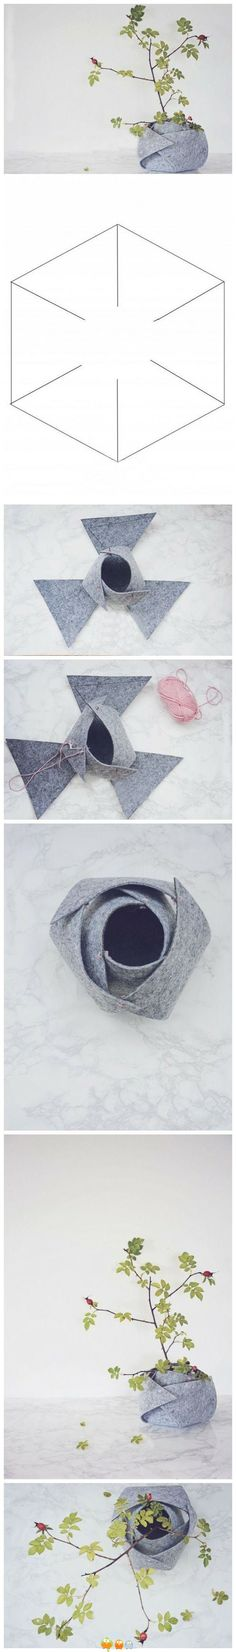 DIY Felt Bowl Tutorial with FREE Template